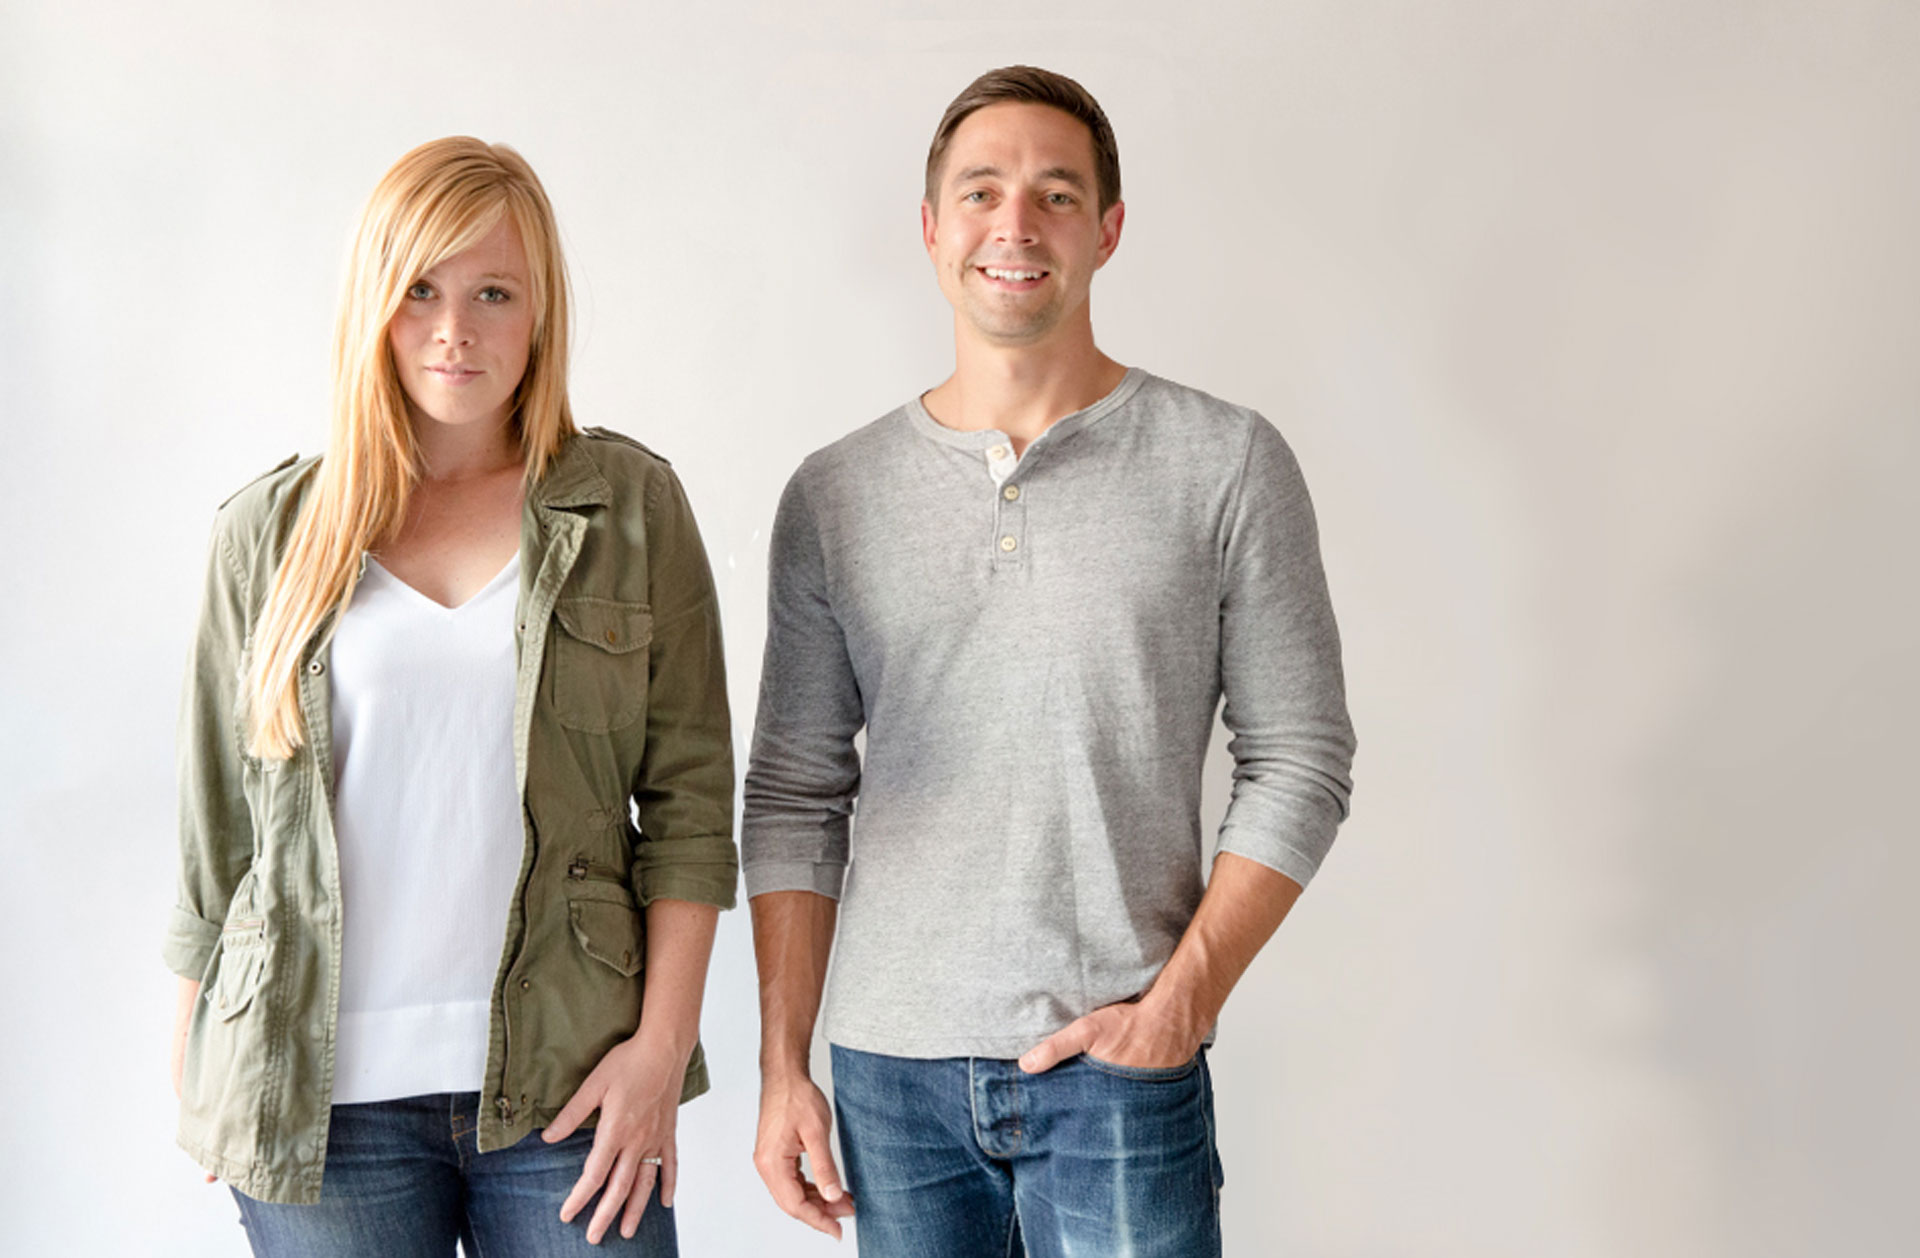 Rob and Emily LaFave founded Foodzie, and now they've founded Din.